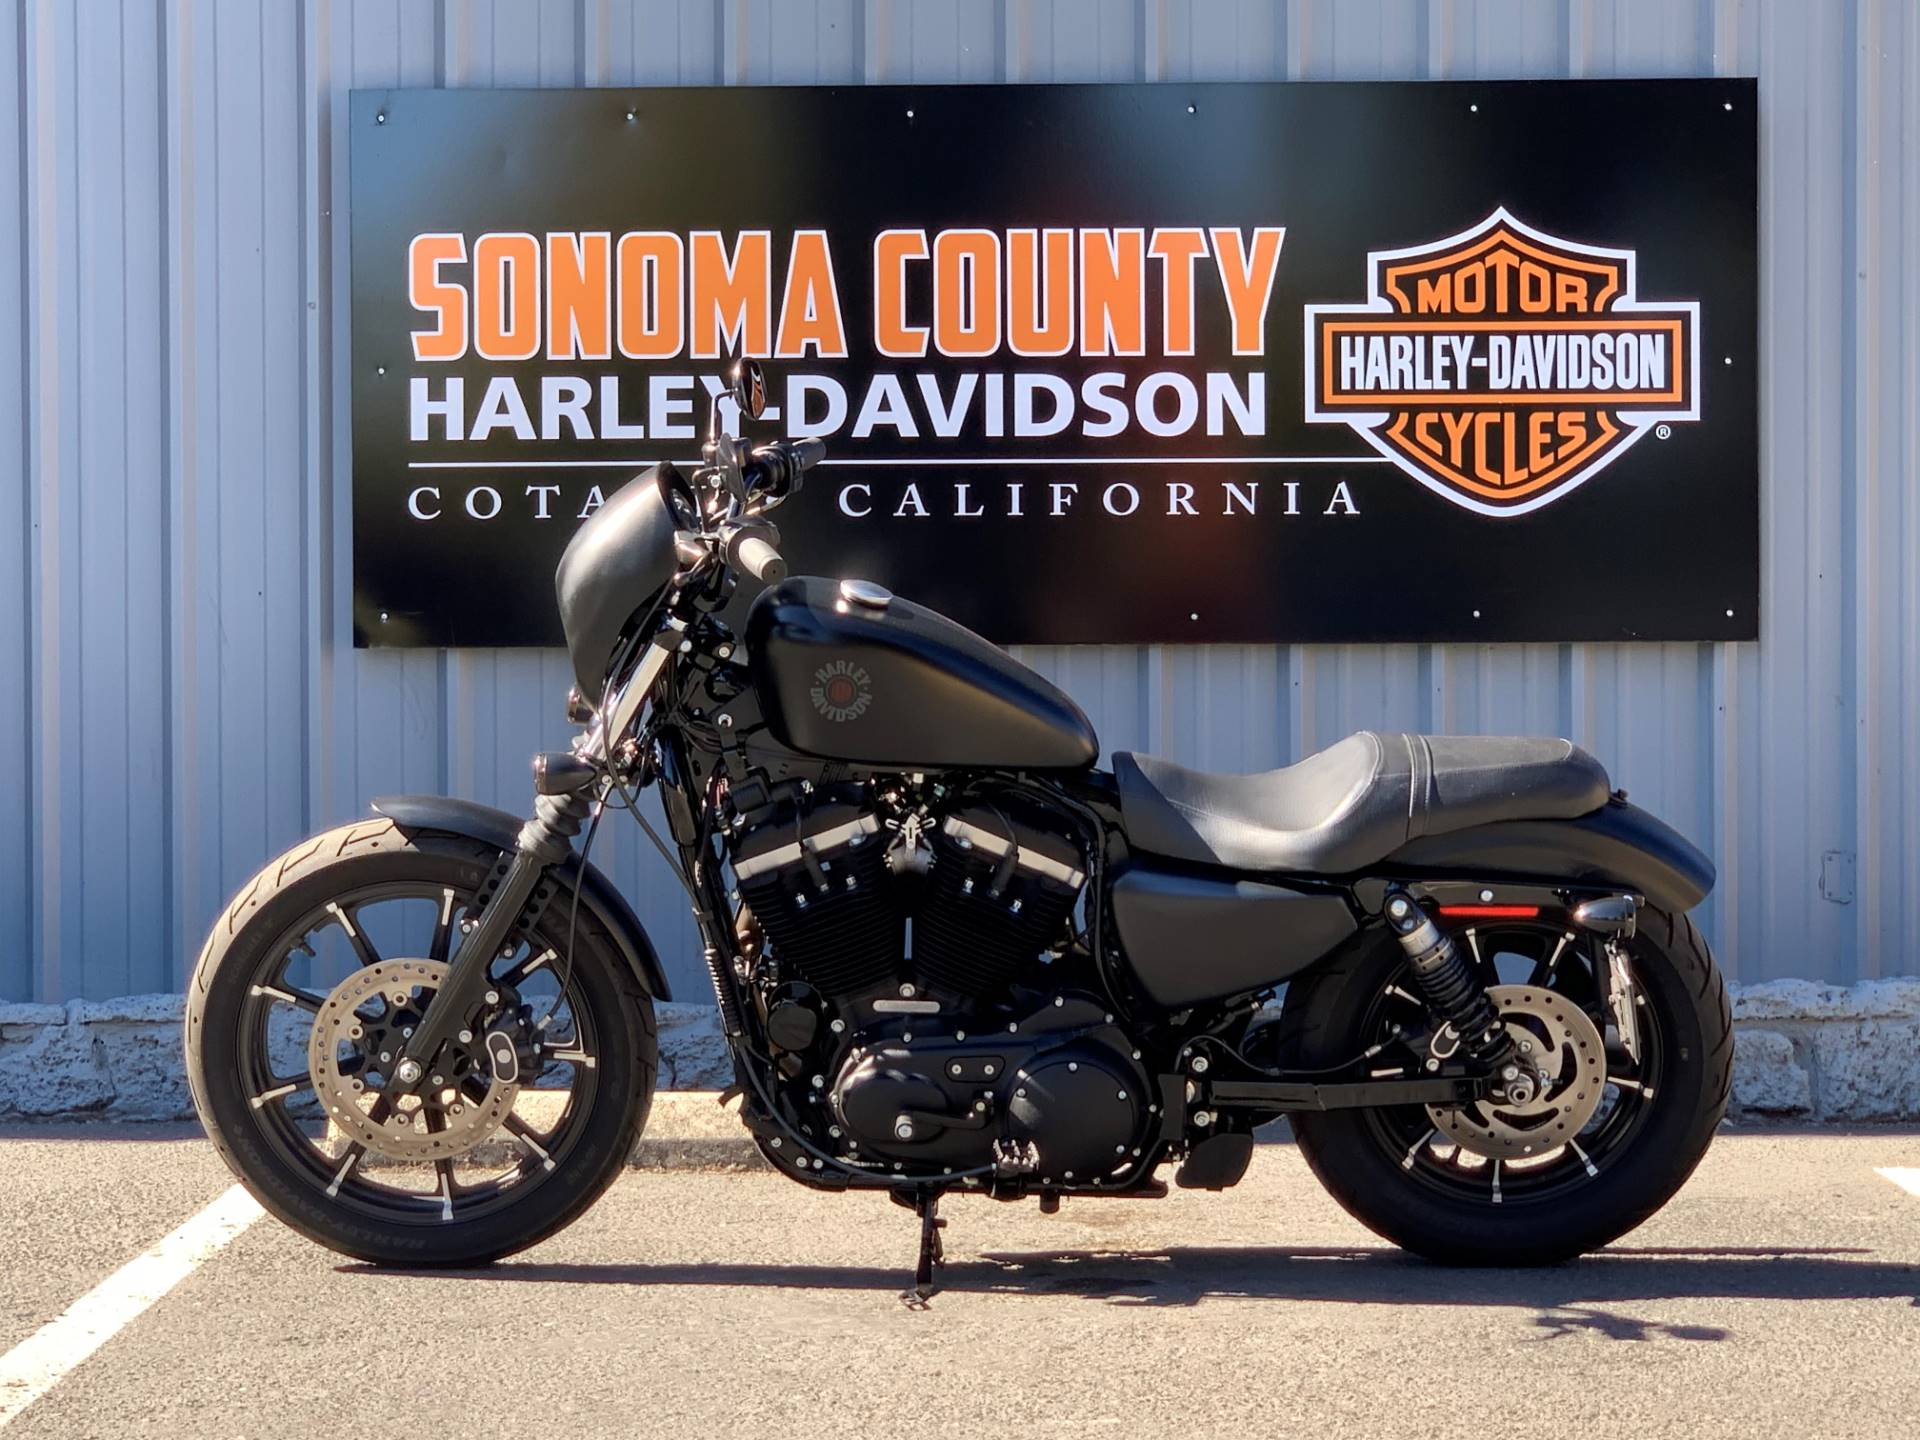 2019 Harley-Davidson SPORTSTER 883 IRON in Cotati, California - Photo 3